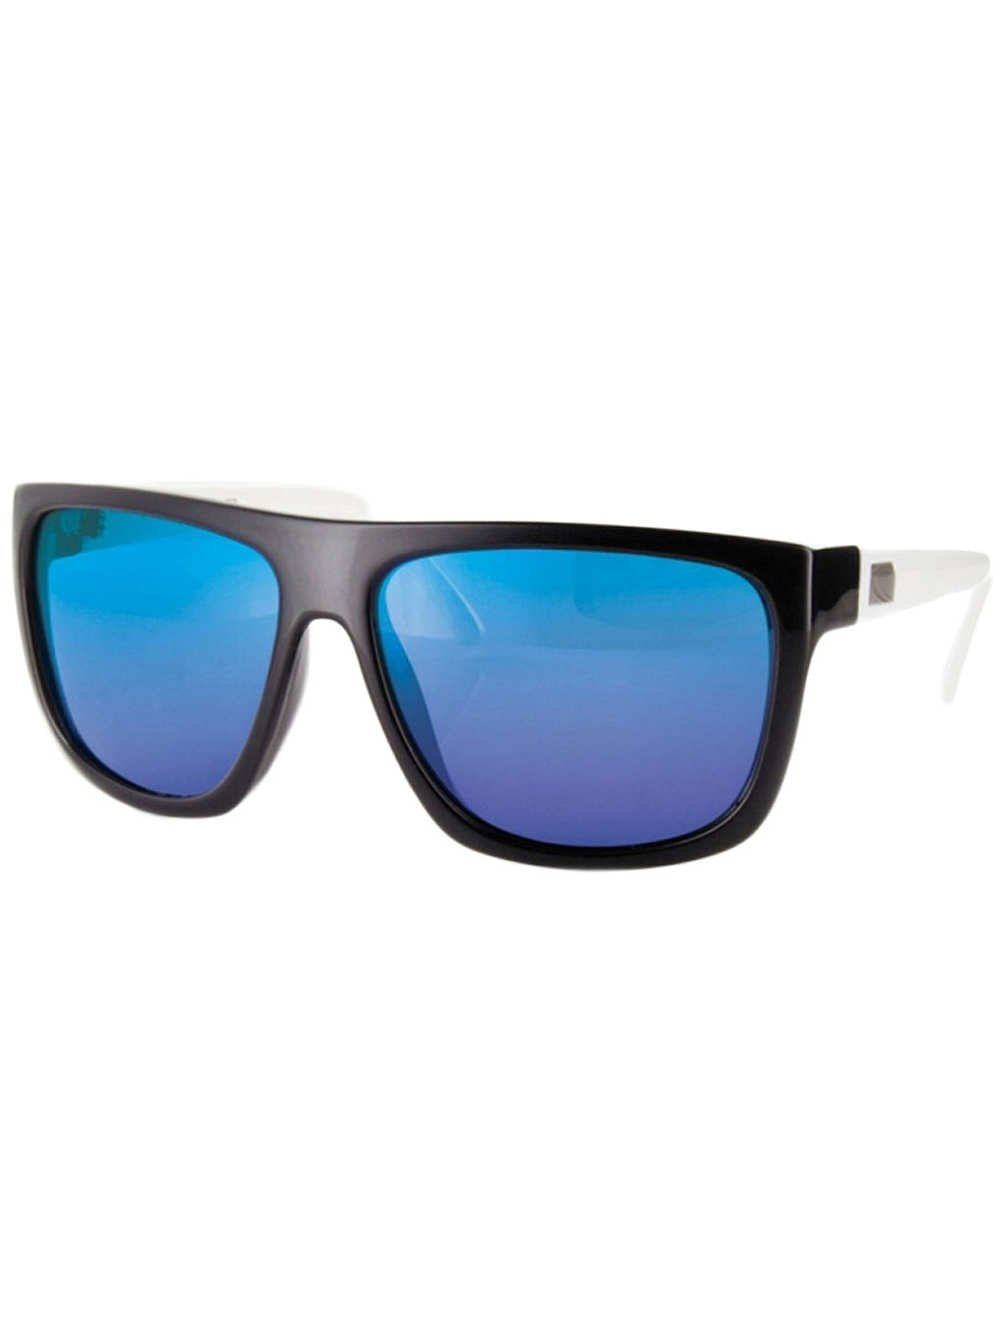 Carve Sanchez Sunglasses, unisex, Sanchez Black Streak Polarized One Size Carve (CATYE) TBB036